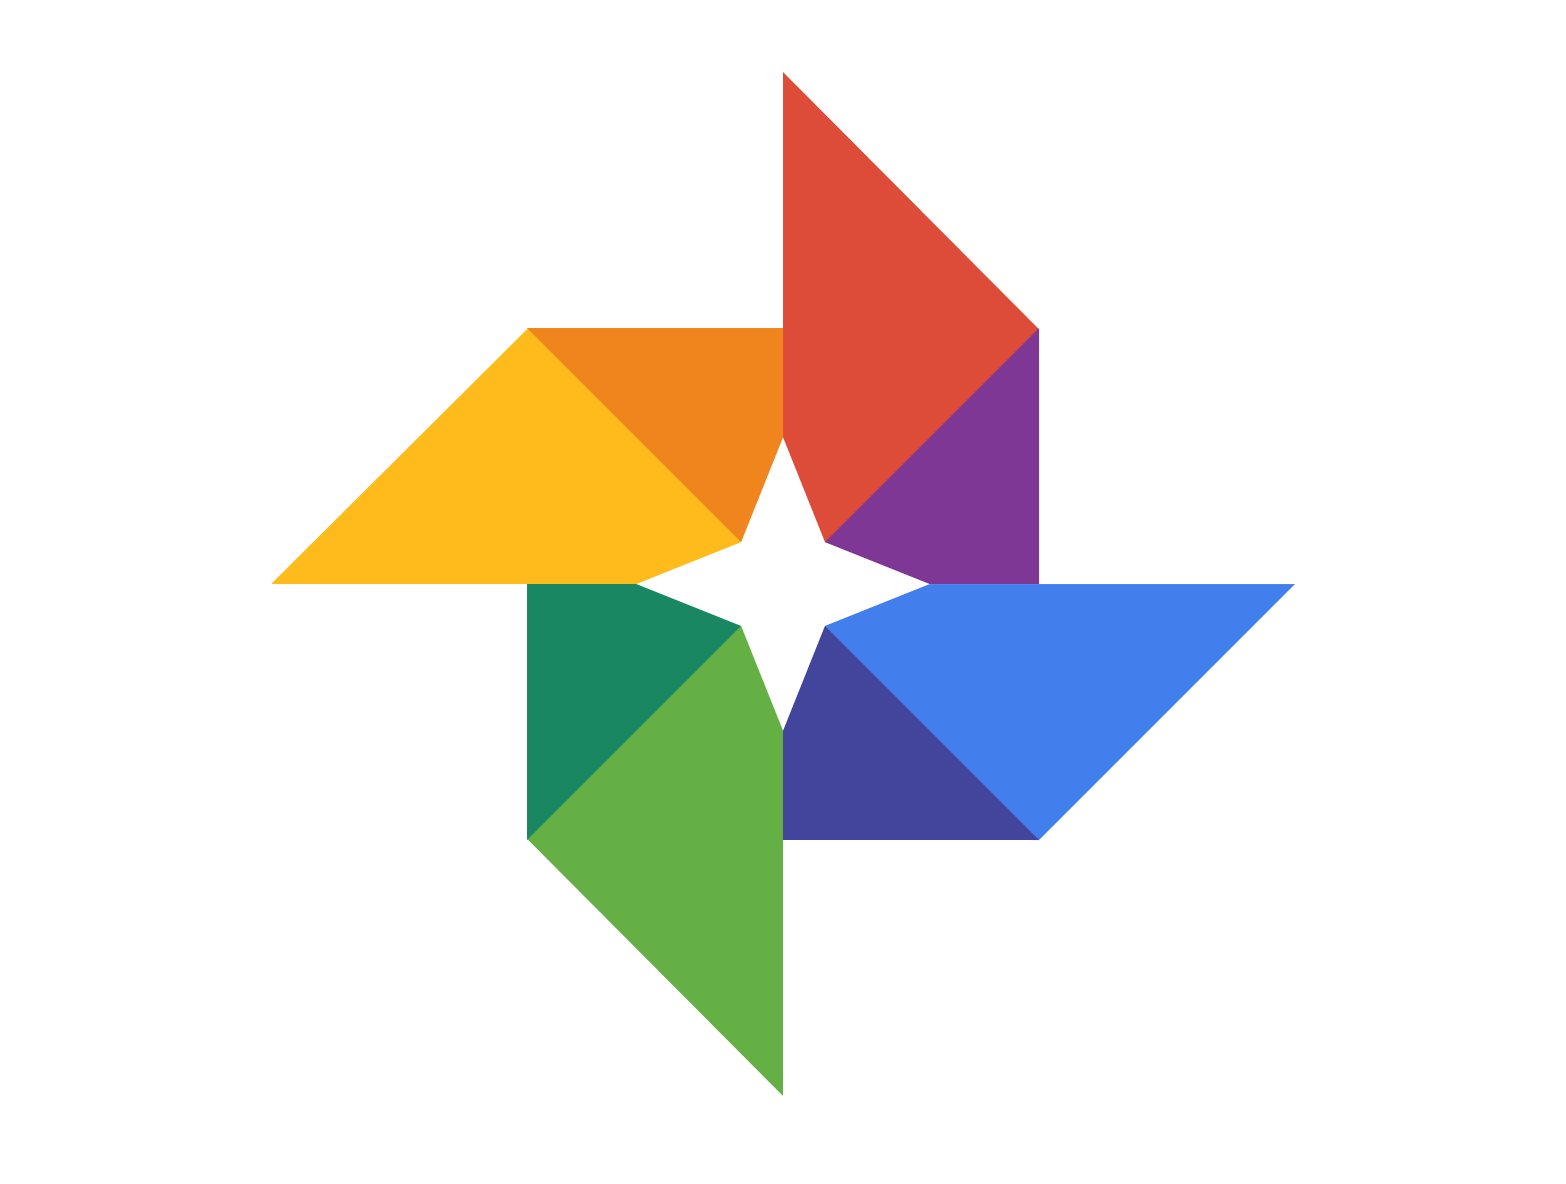 https://upload.wikimedia.org/wikipedia/commons/3/3a/Google-Photos-icon-logo.png